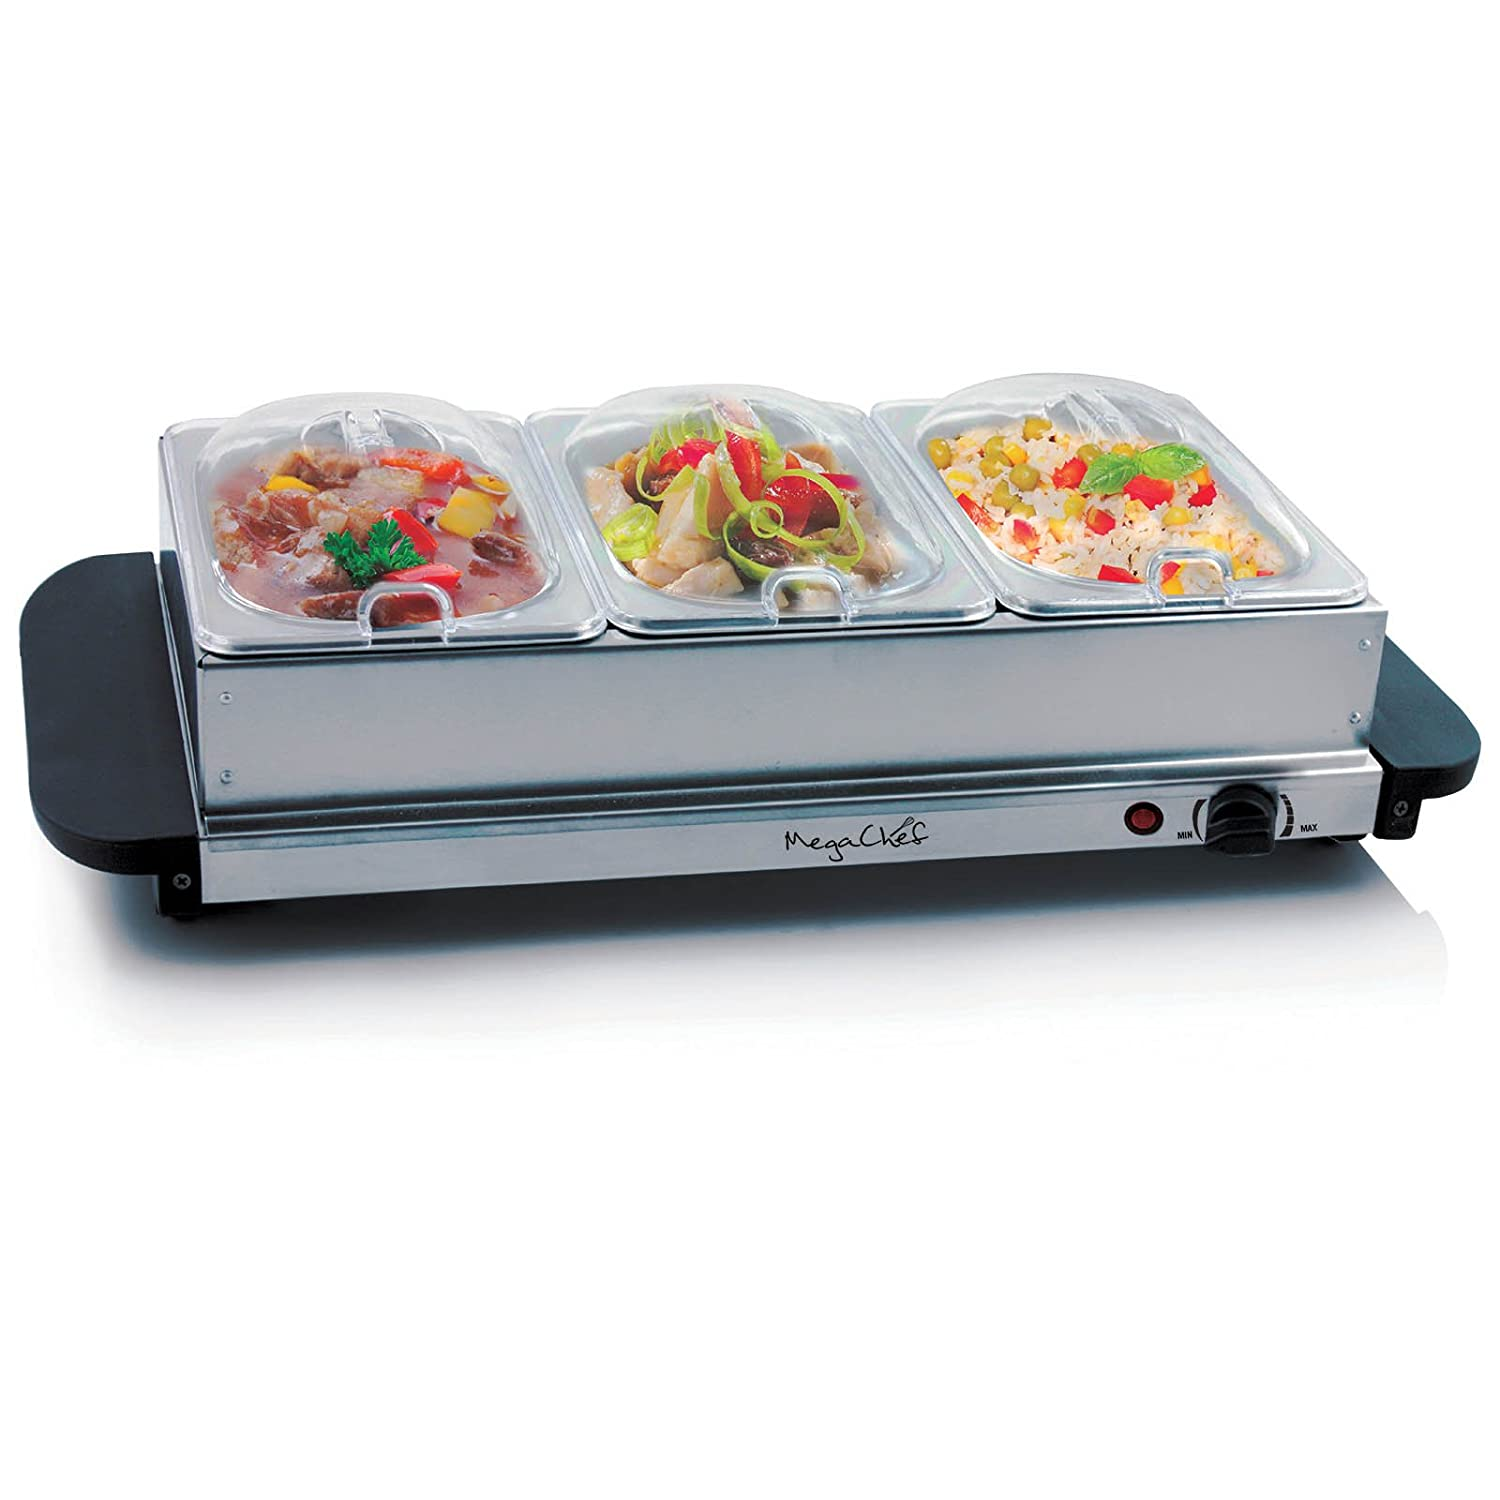 MegaChef Buffet Server & Food Warmer With 3 Removable Sectional Trays, Heated Warming Tray and Removable Tray Frame MC-9003B